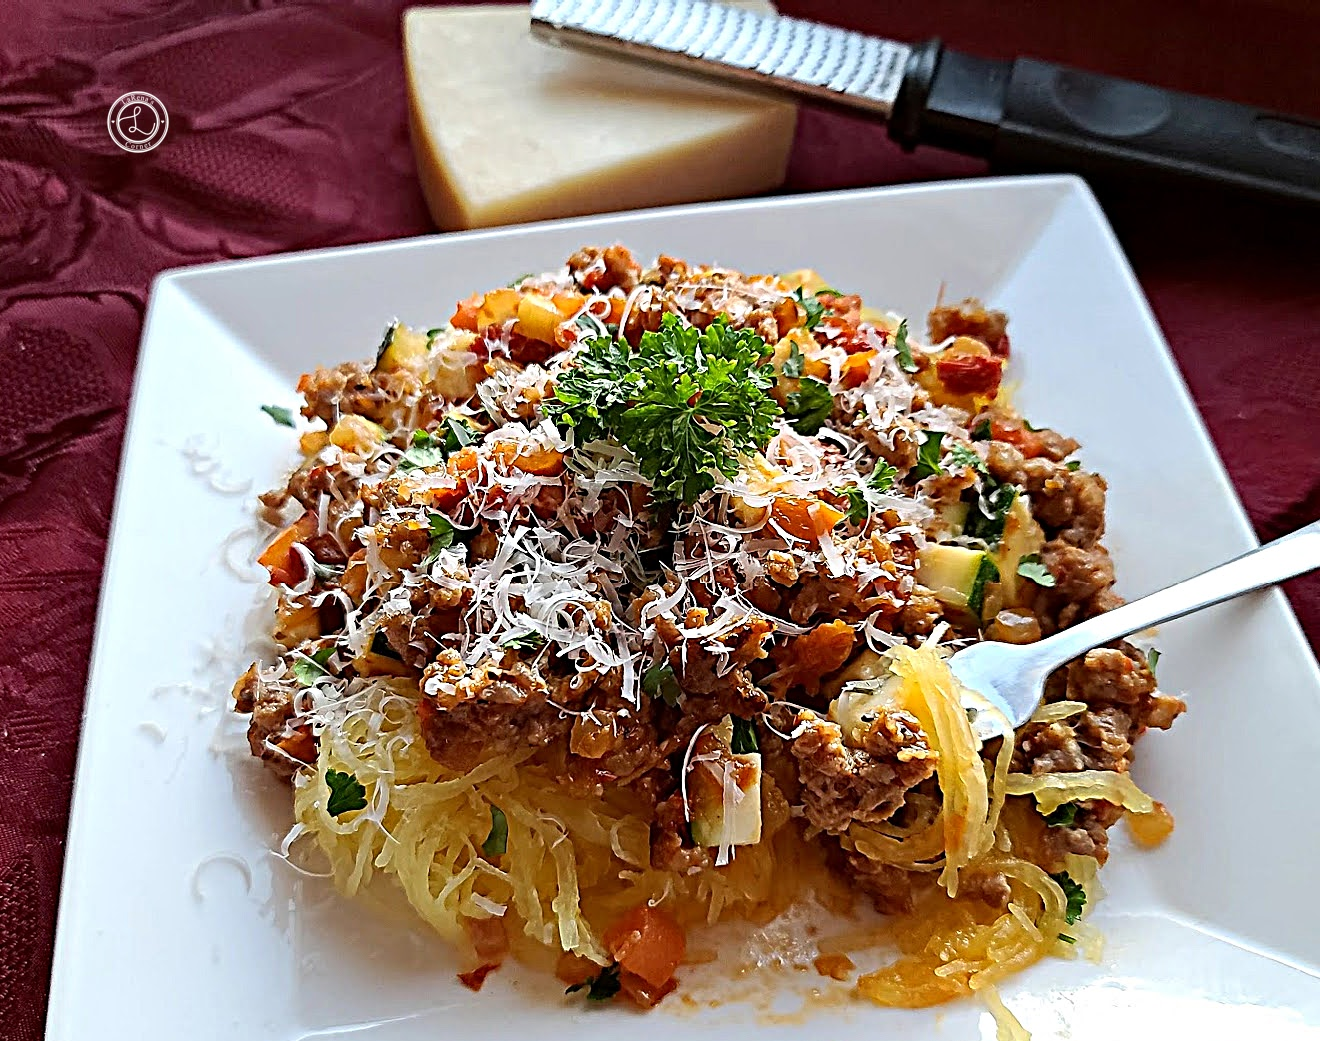 Gluten-Free Moroccan Spaghetti with Parmesan cheese in the background.